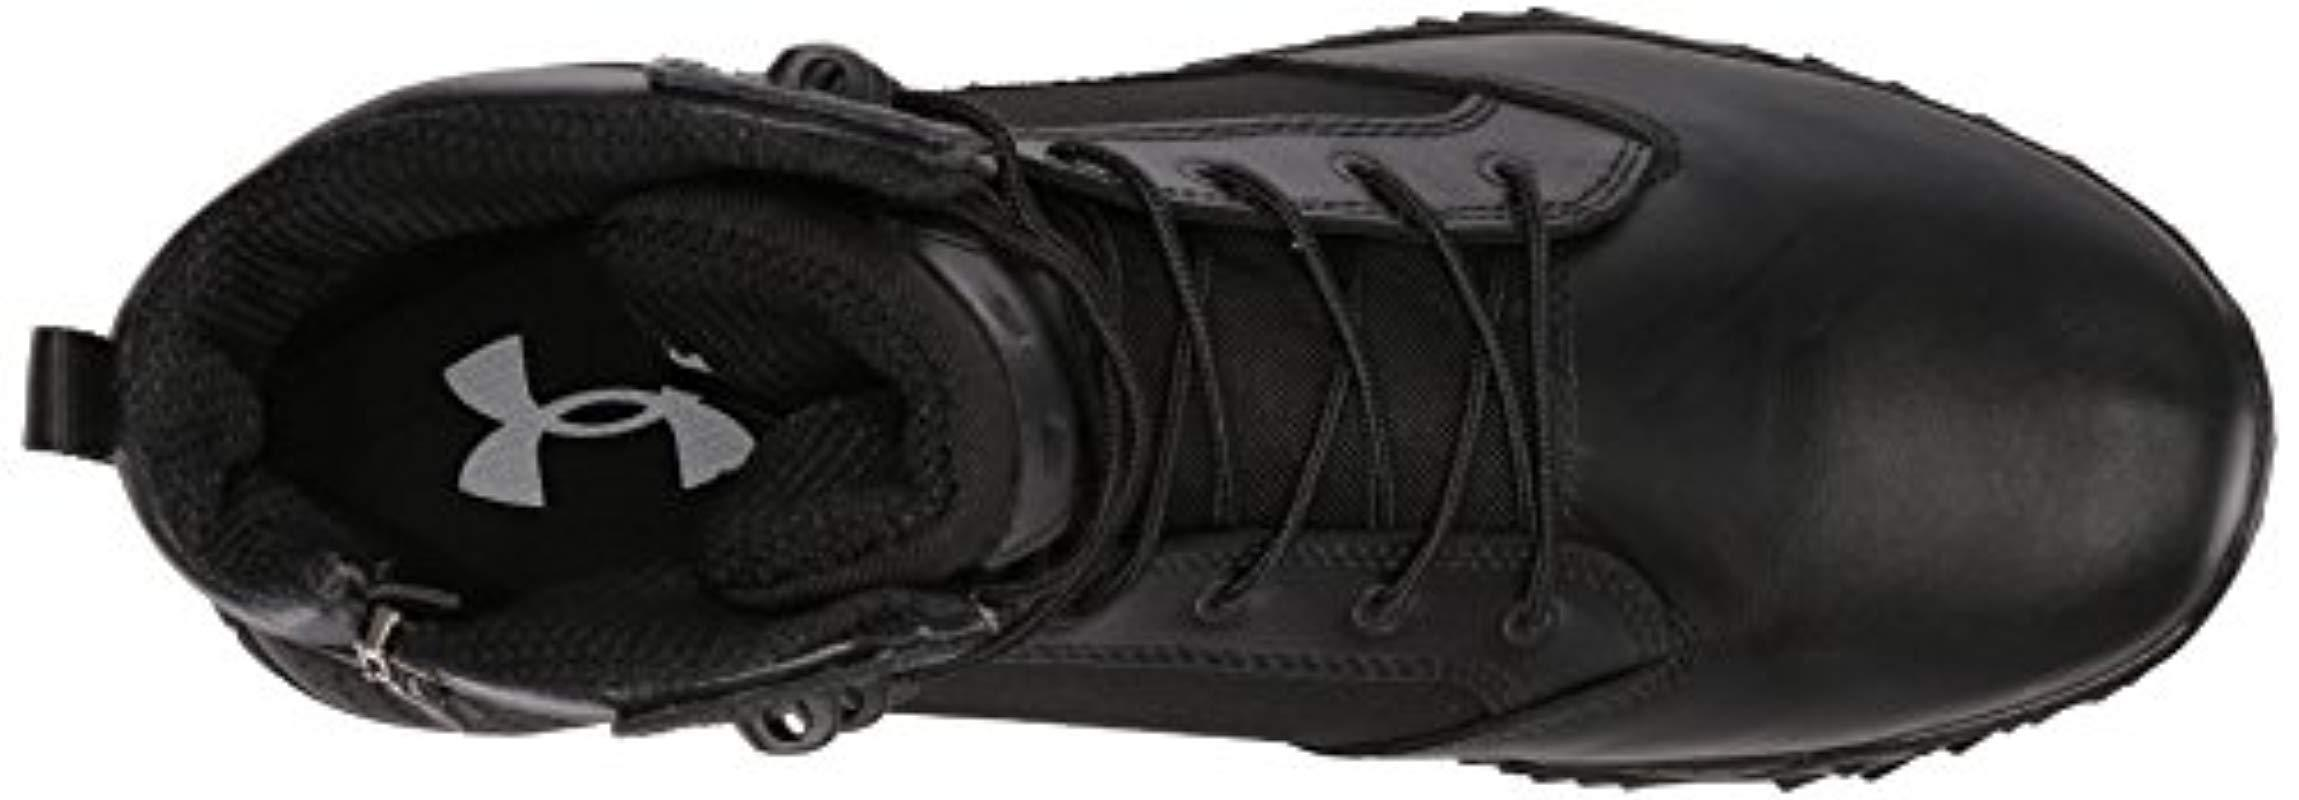 Under Armour Mens Ua Stellar Tac Side Zip Low Rise Hiking Shoes